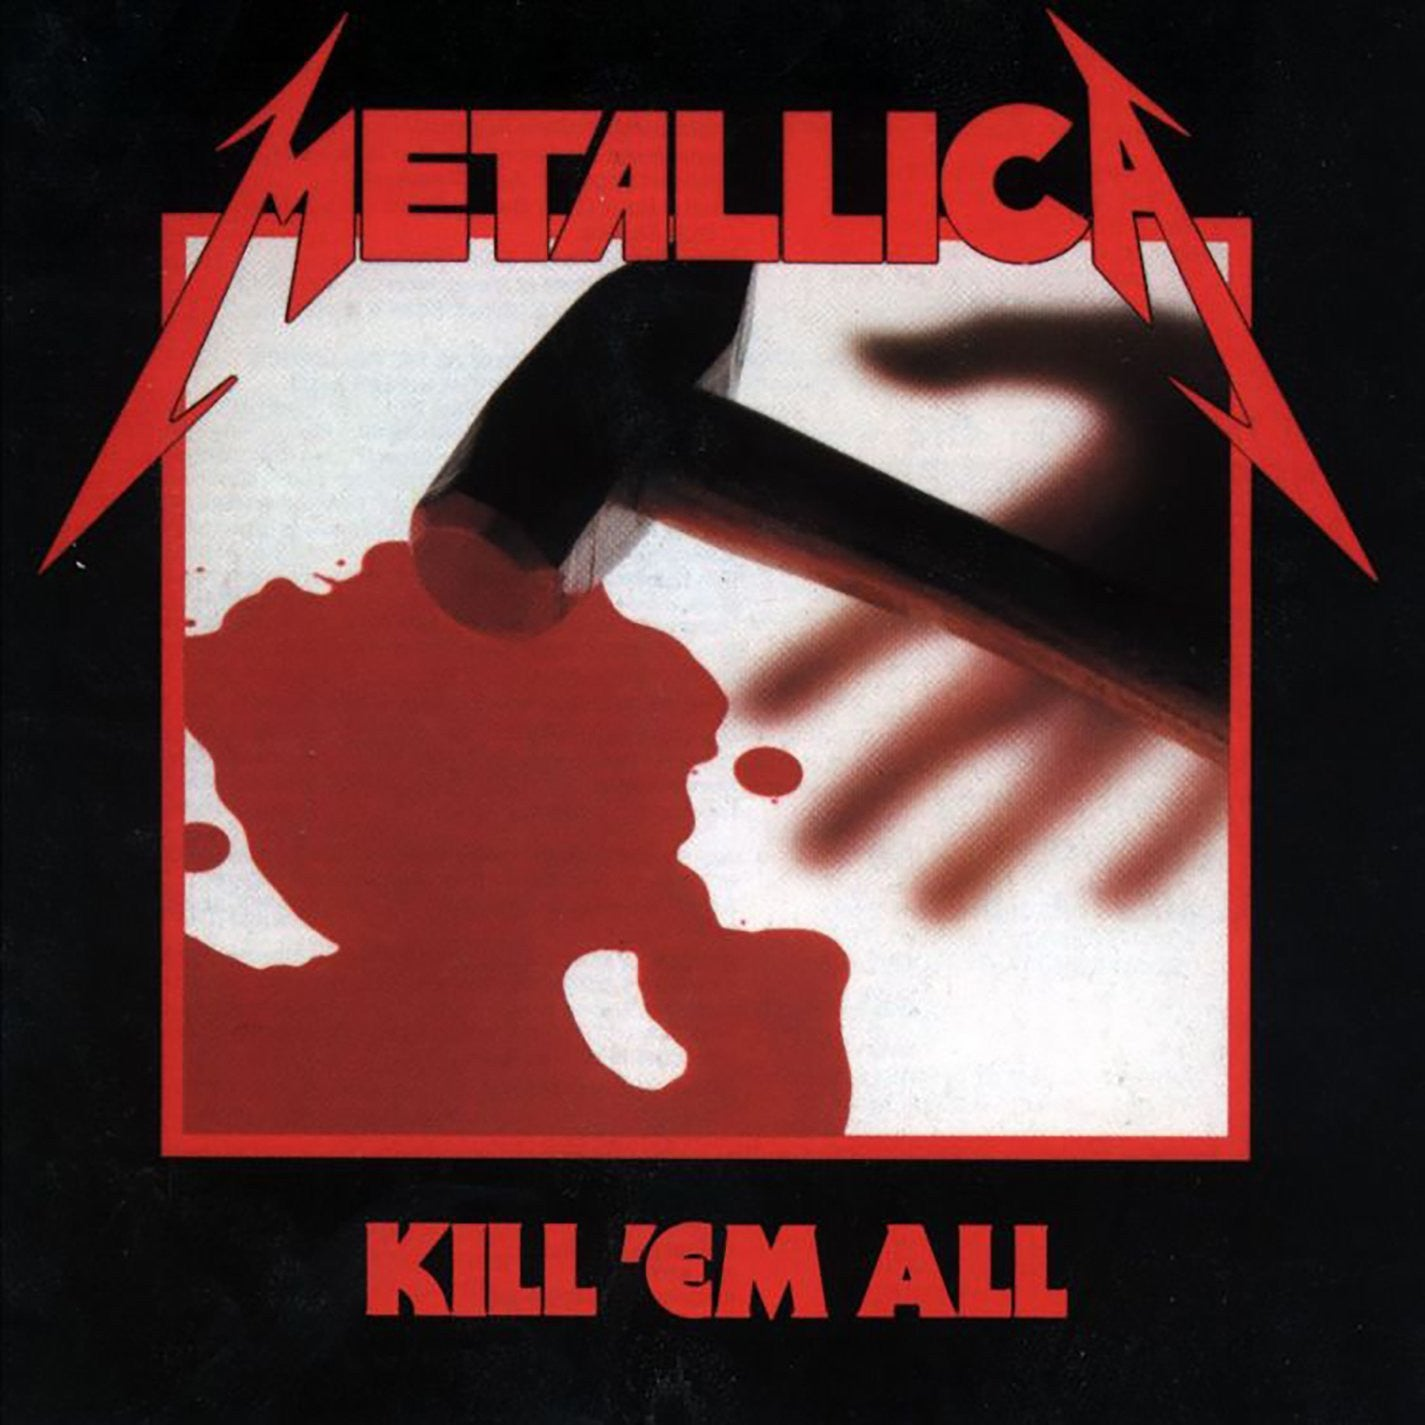 Metallica - Kill 'Em All LP